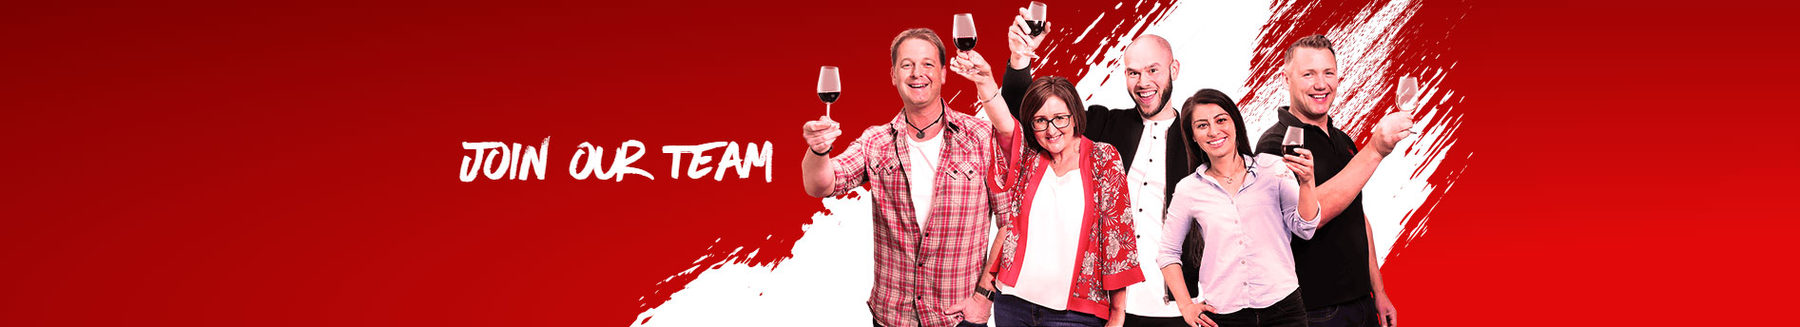 Company Image (Virgin Wines: Join Our Team)